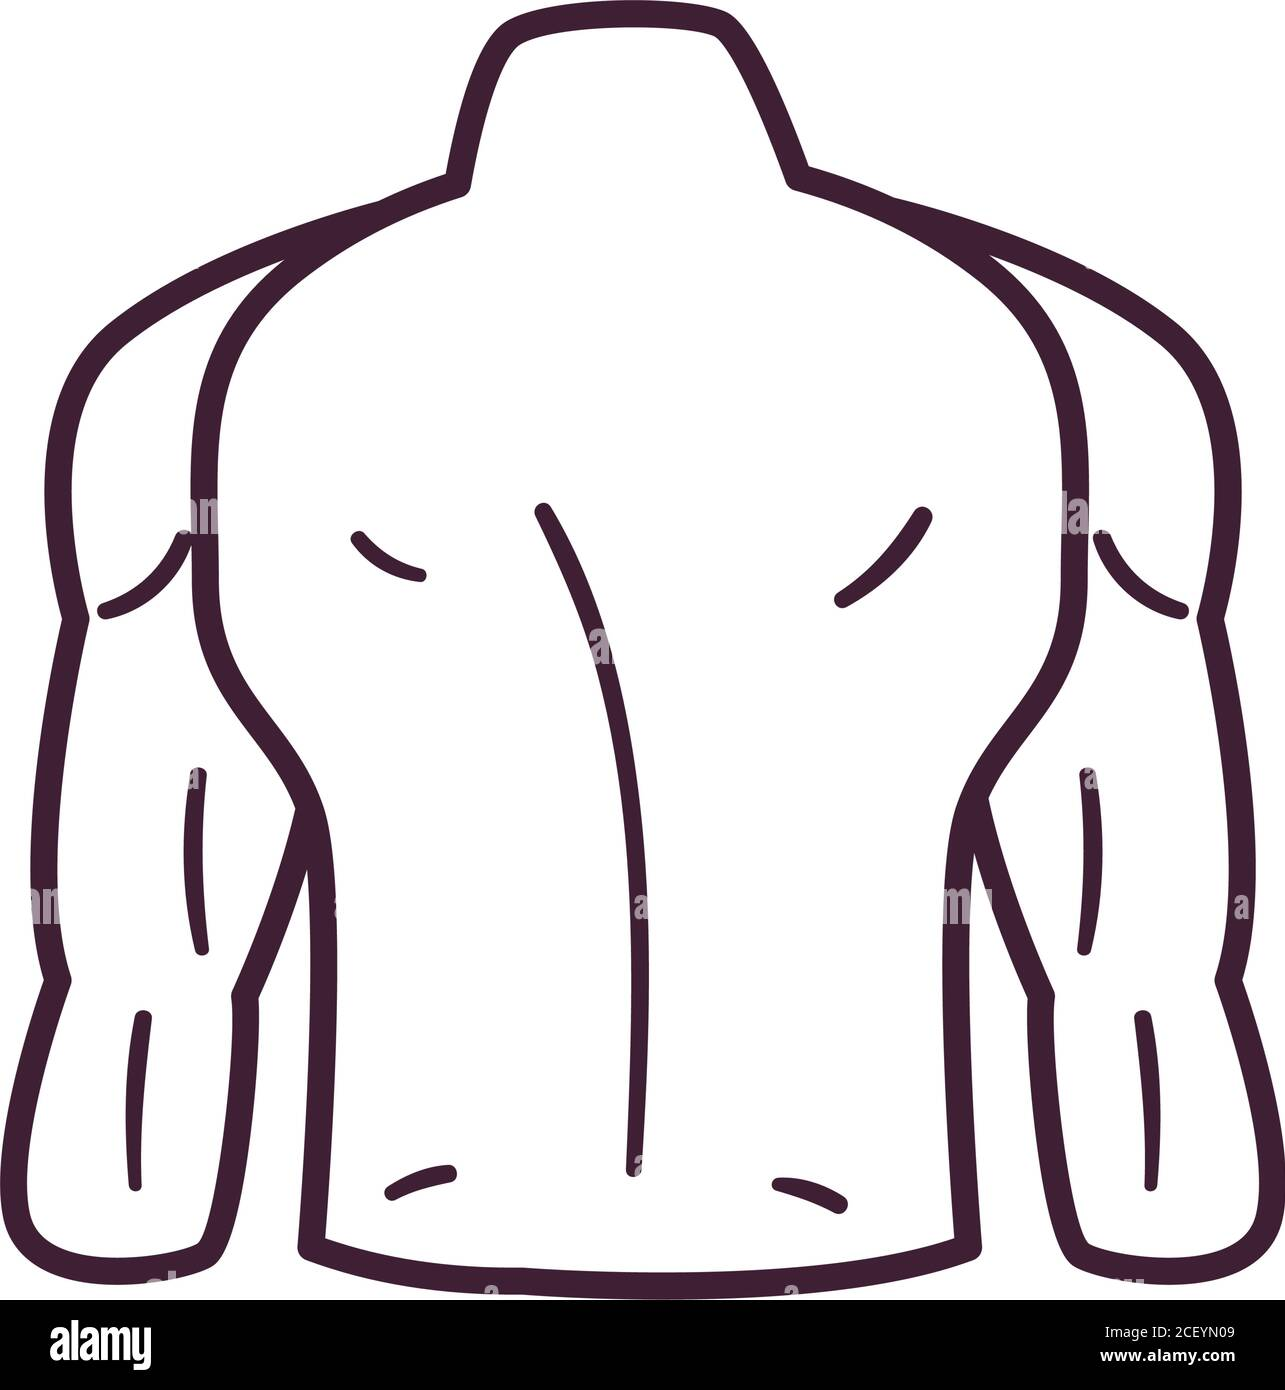 Male Body Icon High Resolution Stock Photography And Images Alamy You have come to the right place! https www alamy com male back line style icon design human body person people health anatomy biology and science theme vector illustration image370632089 html